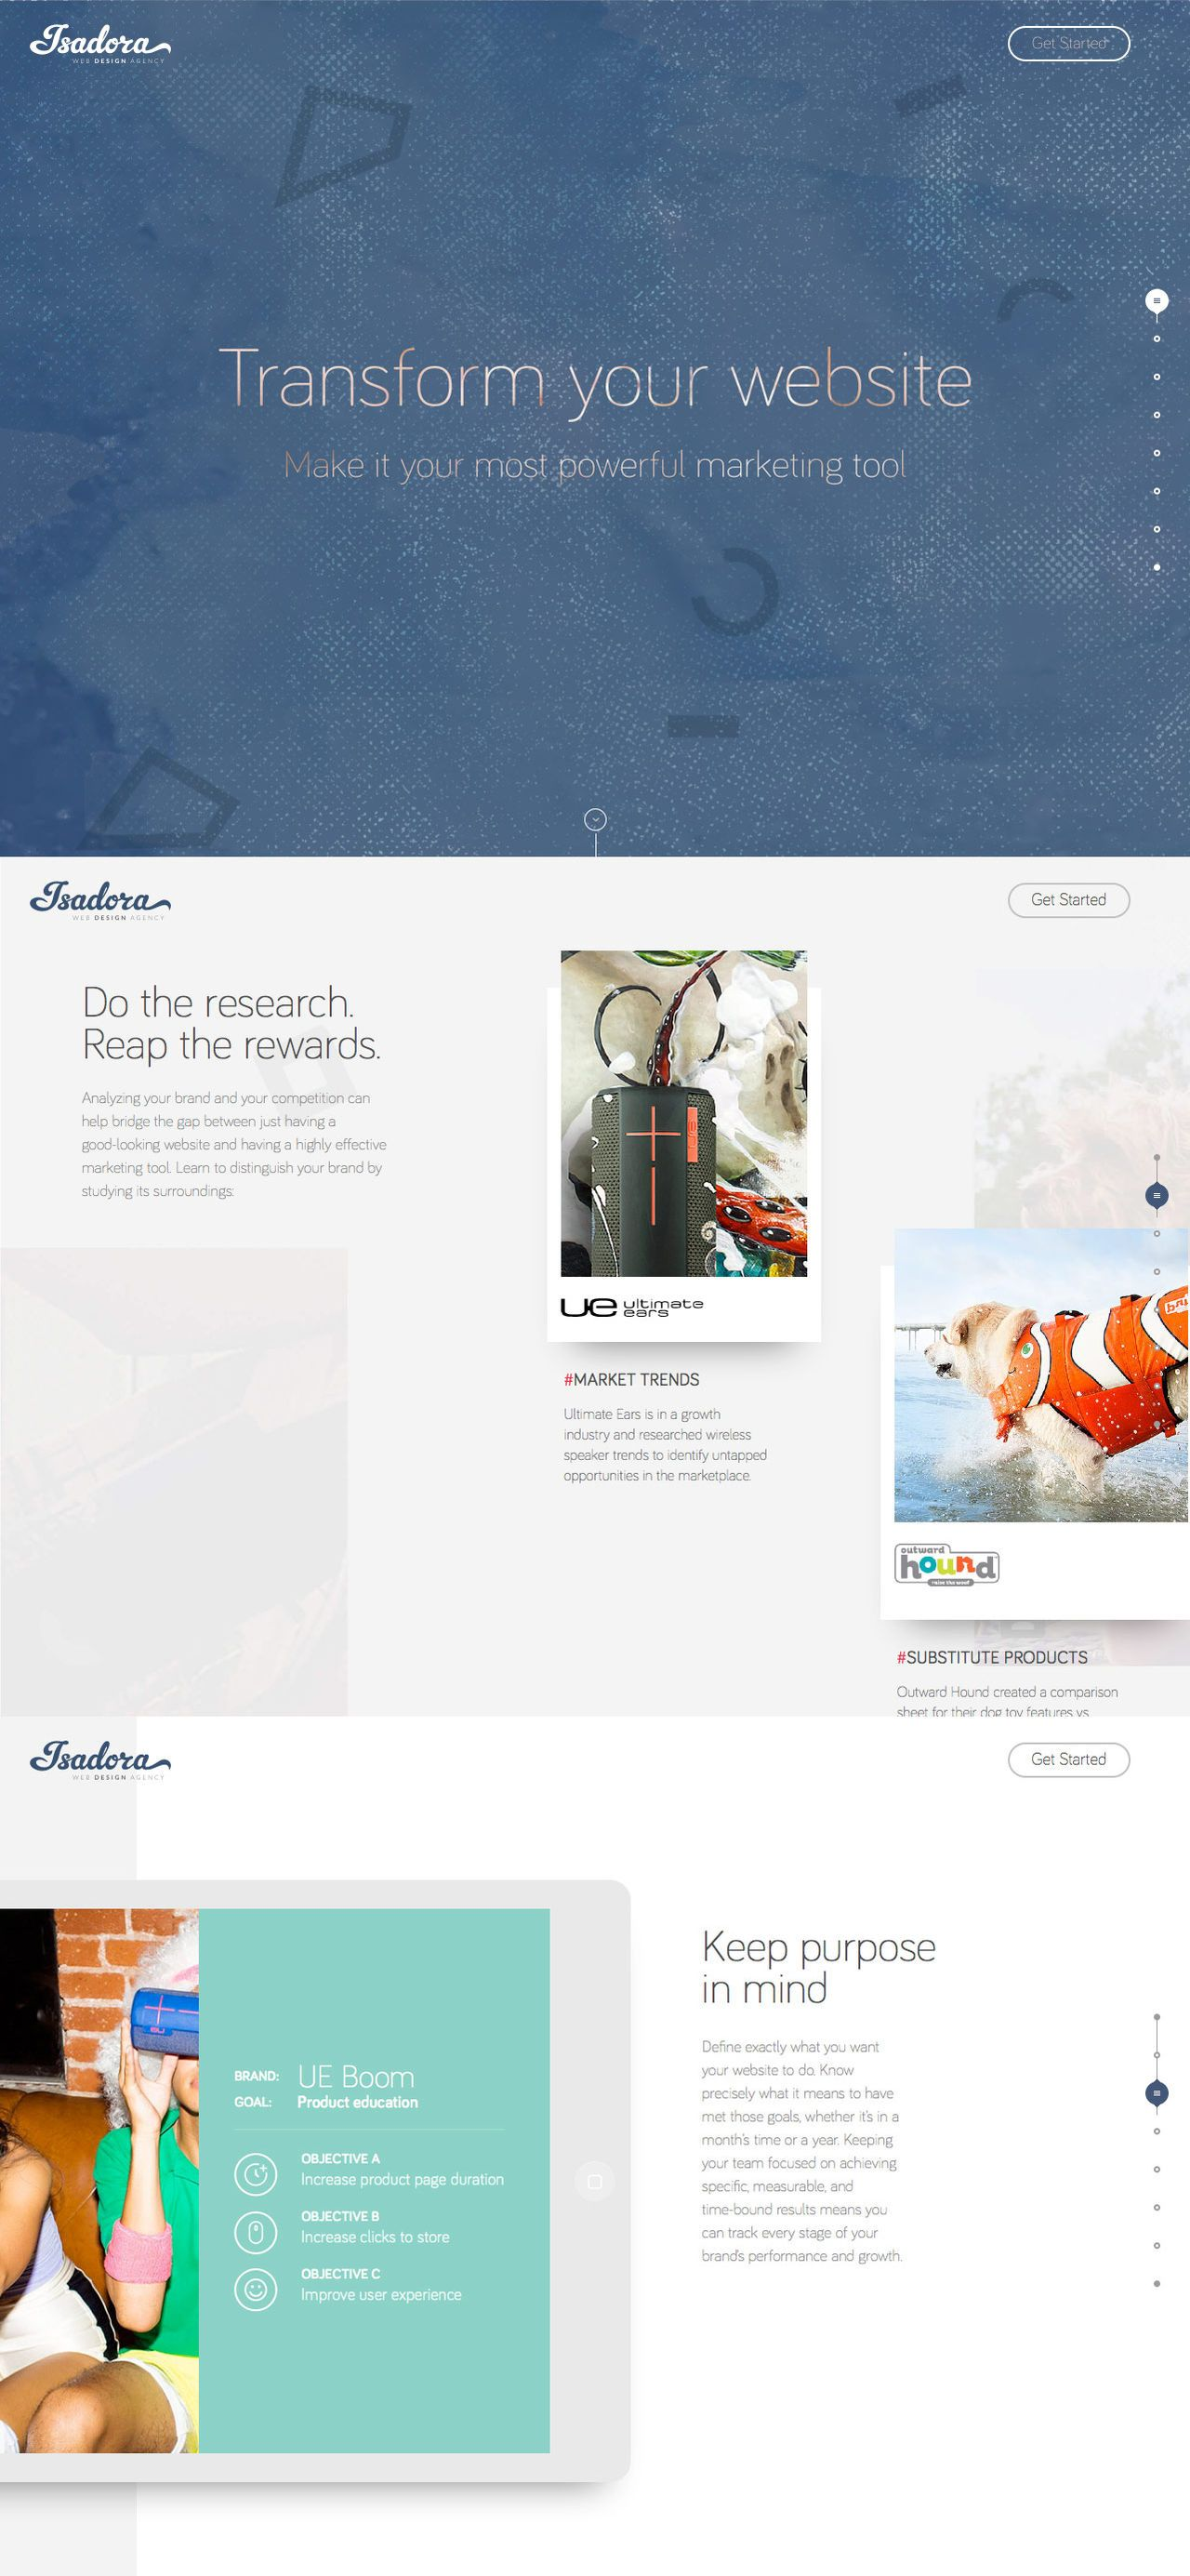 Isadora Digital Agency (More web design inspiration at ...